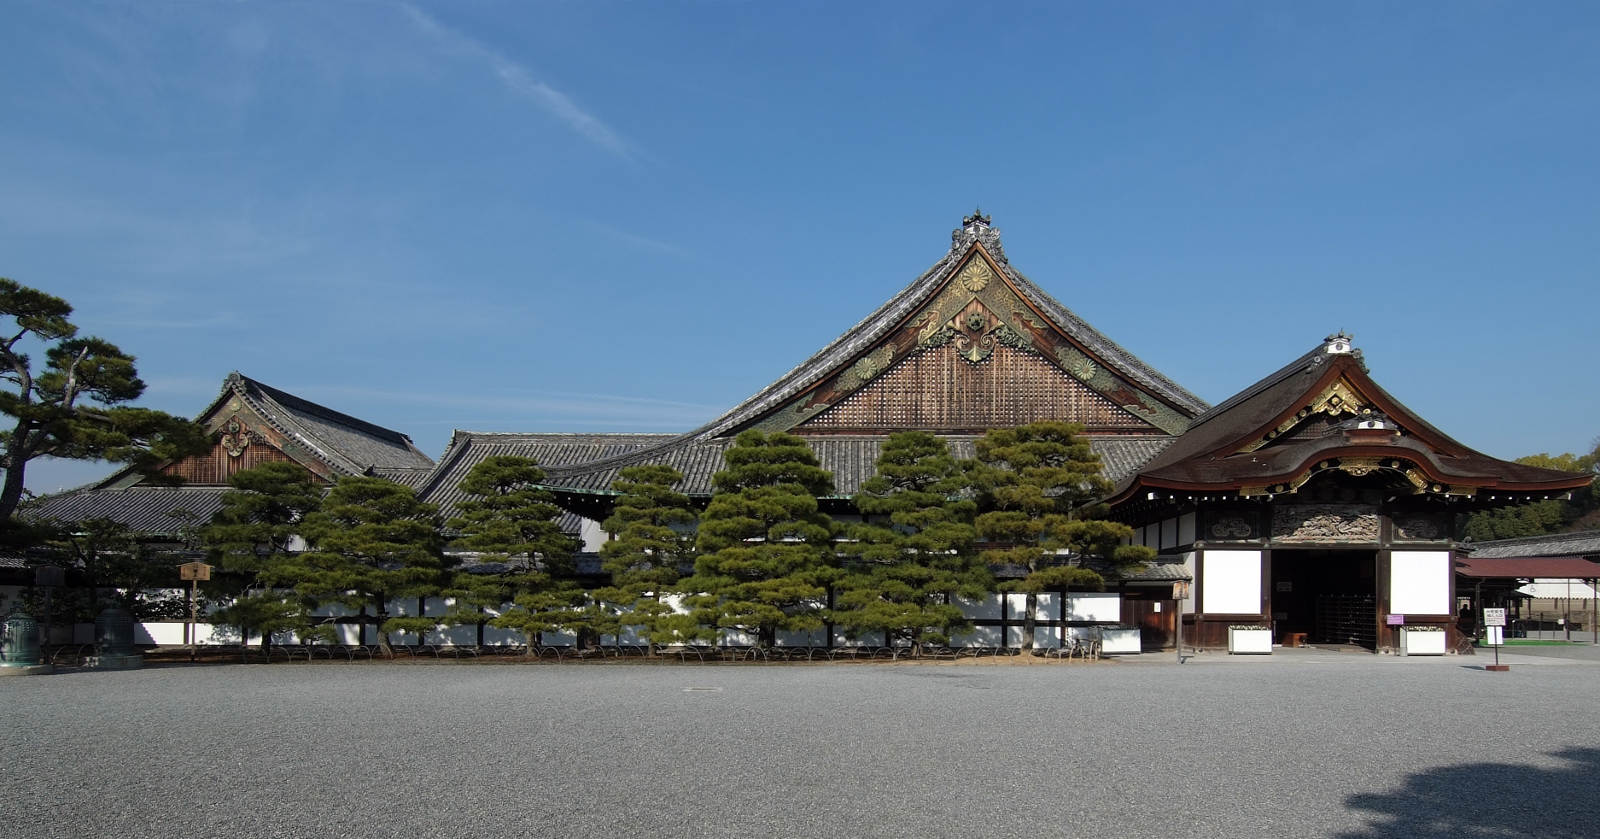 Kyoto travel guide area by area: Nijo Castle - youinJapan.net